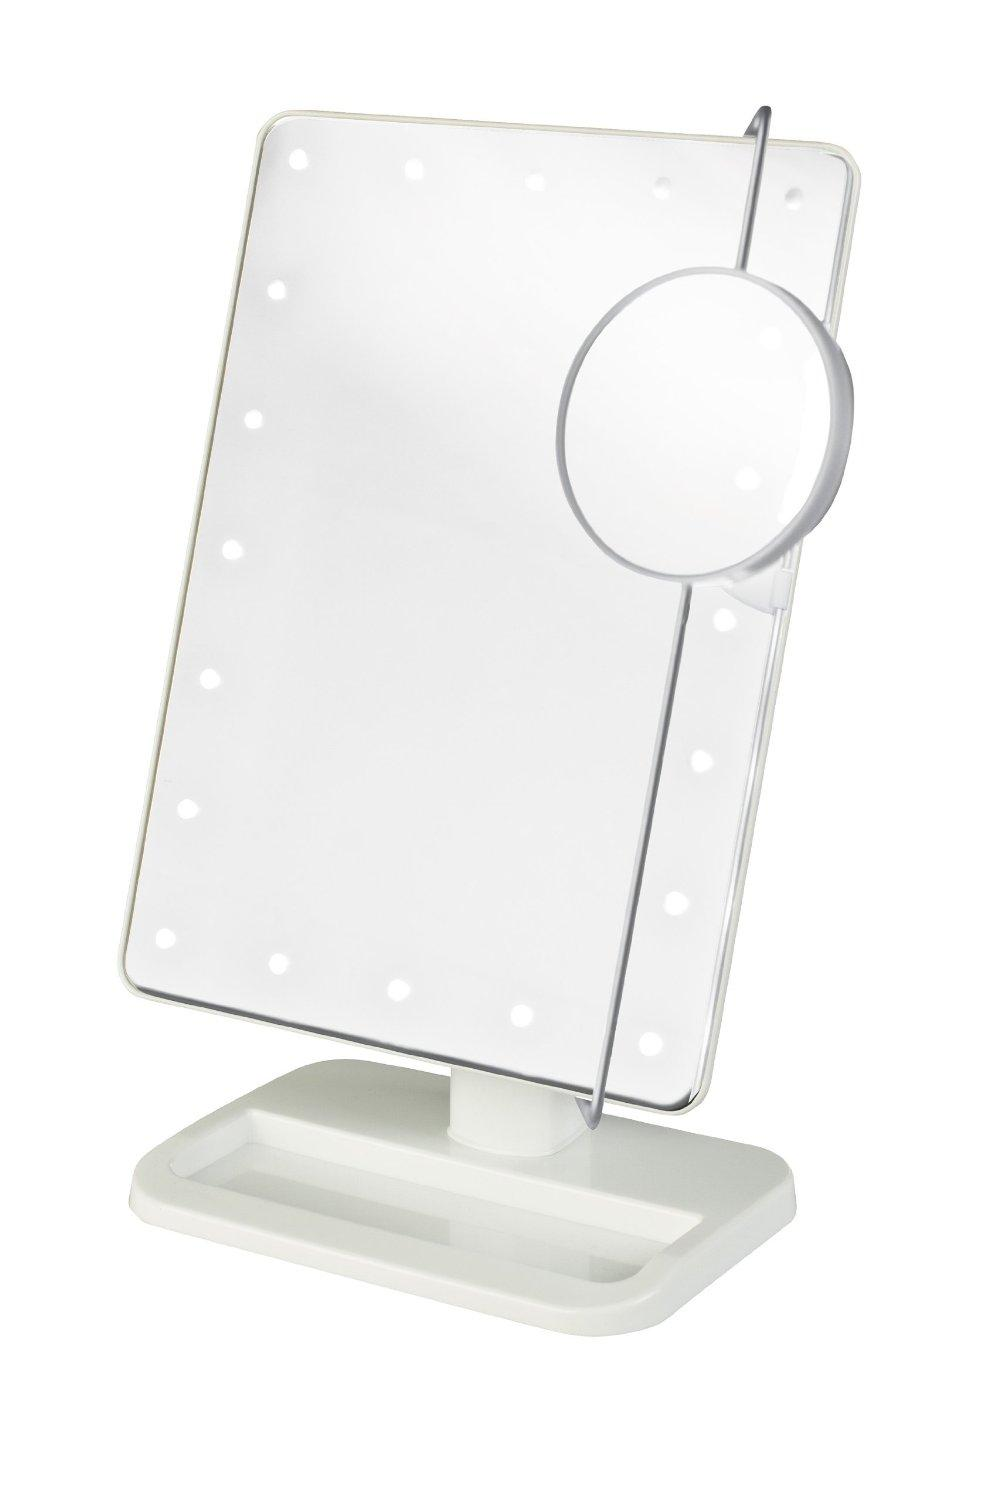 Makeup Mirrors Adjustable 20 Led Lighted Makeup Mirror Portable Magnifying Vanity Tabletop Lamp Cosmetic Mirrorwith 10x Magnify Round Mirror